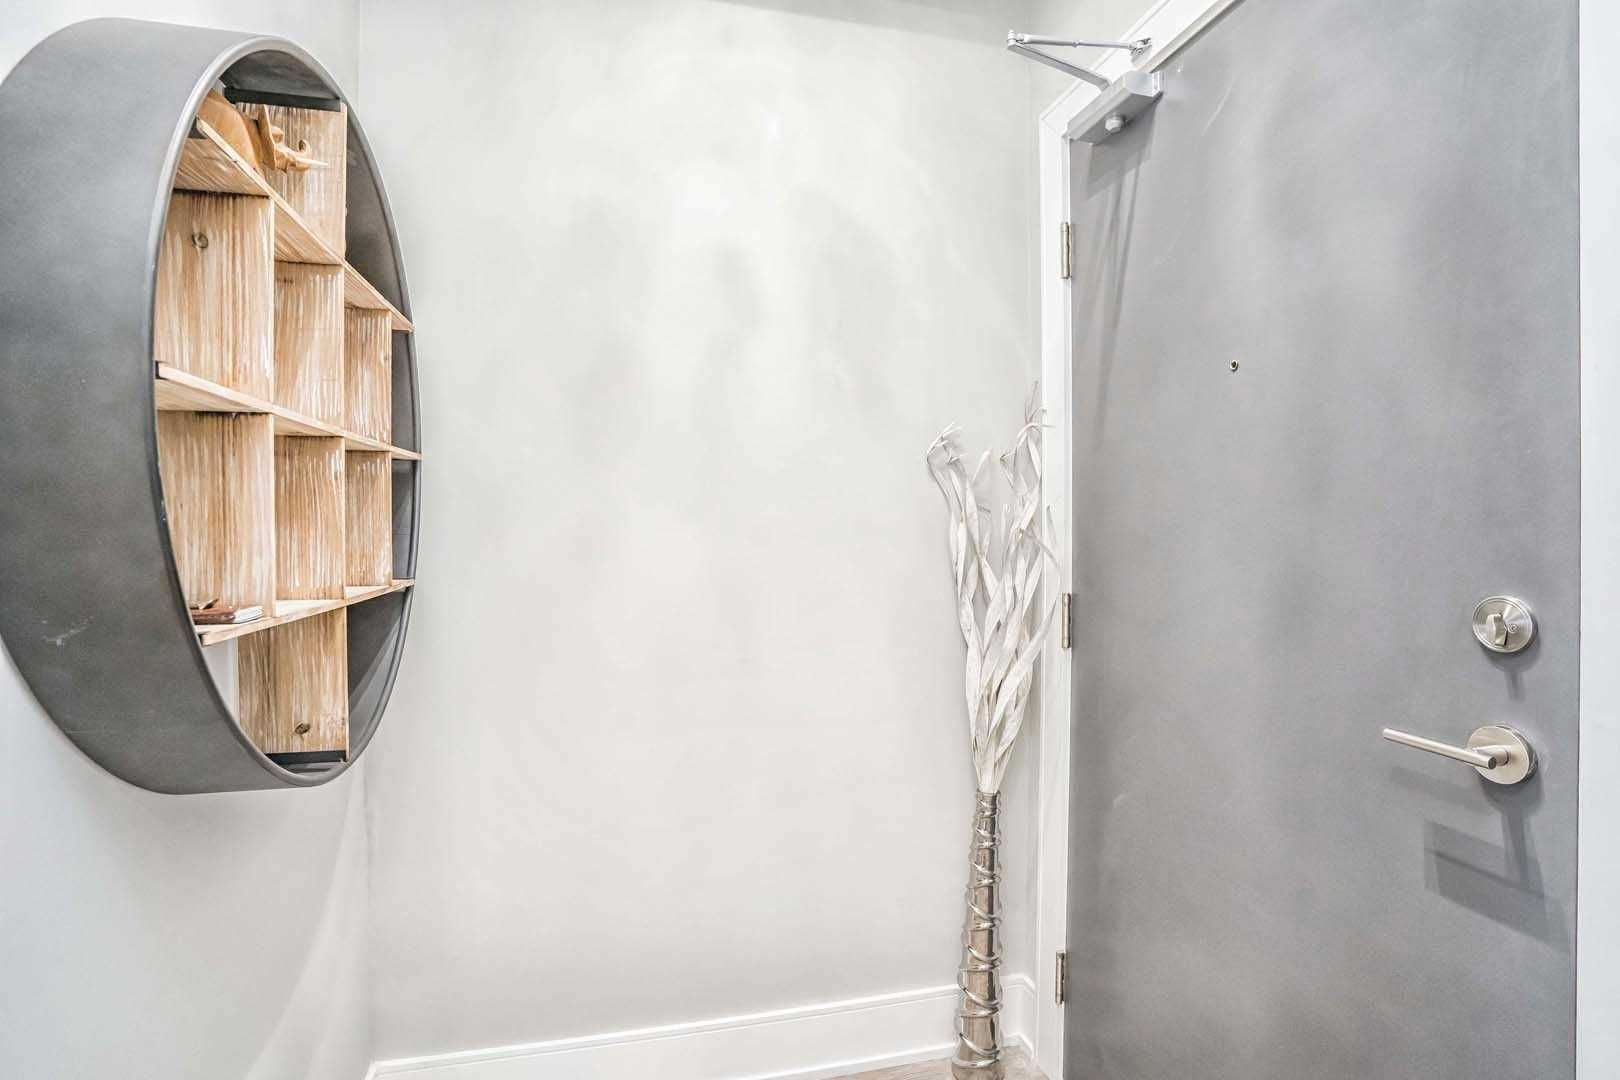 9618 Yonge St, unit 706 for rent in Toronto - image #2